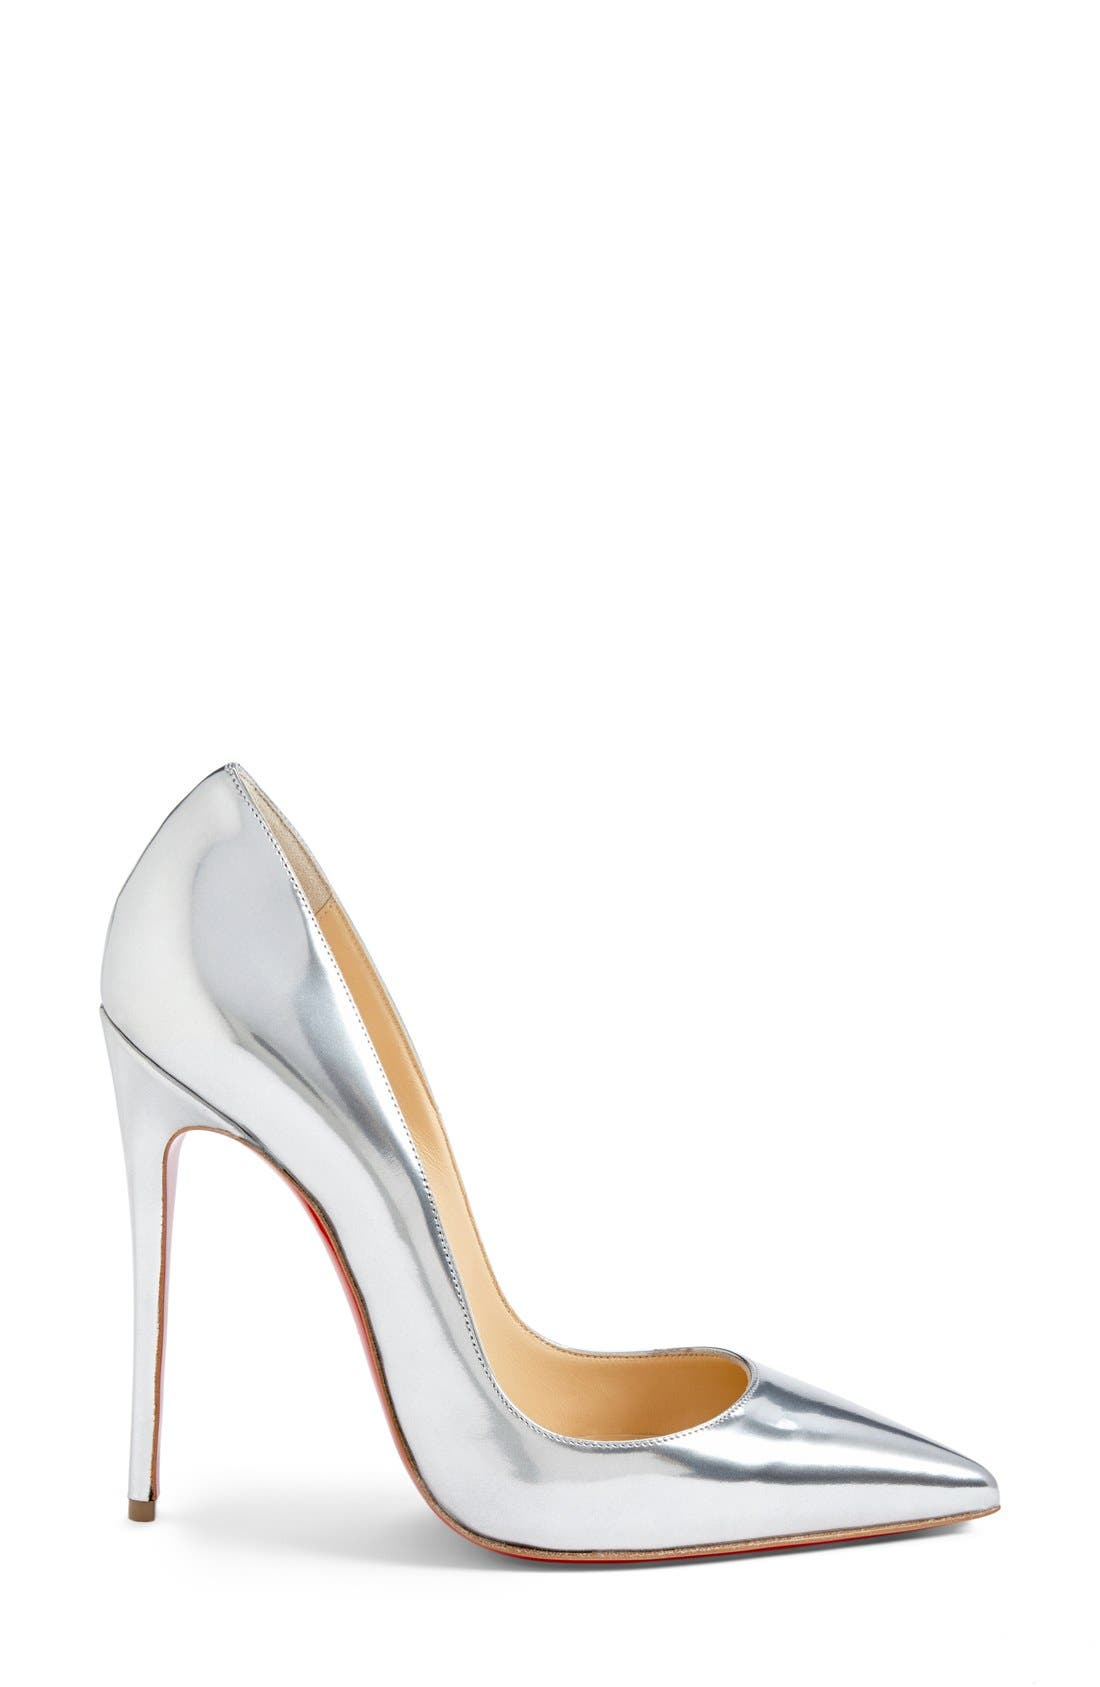 'So Kate' Pointy Toe Pump,                             Alternate thumbnail 4, color,                             040